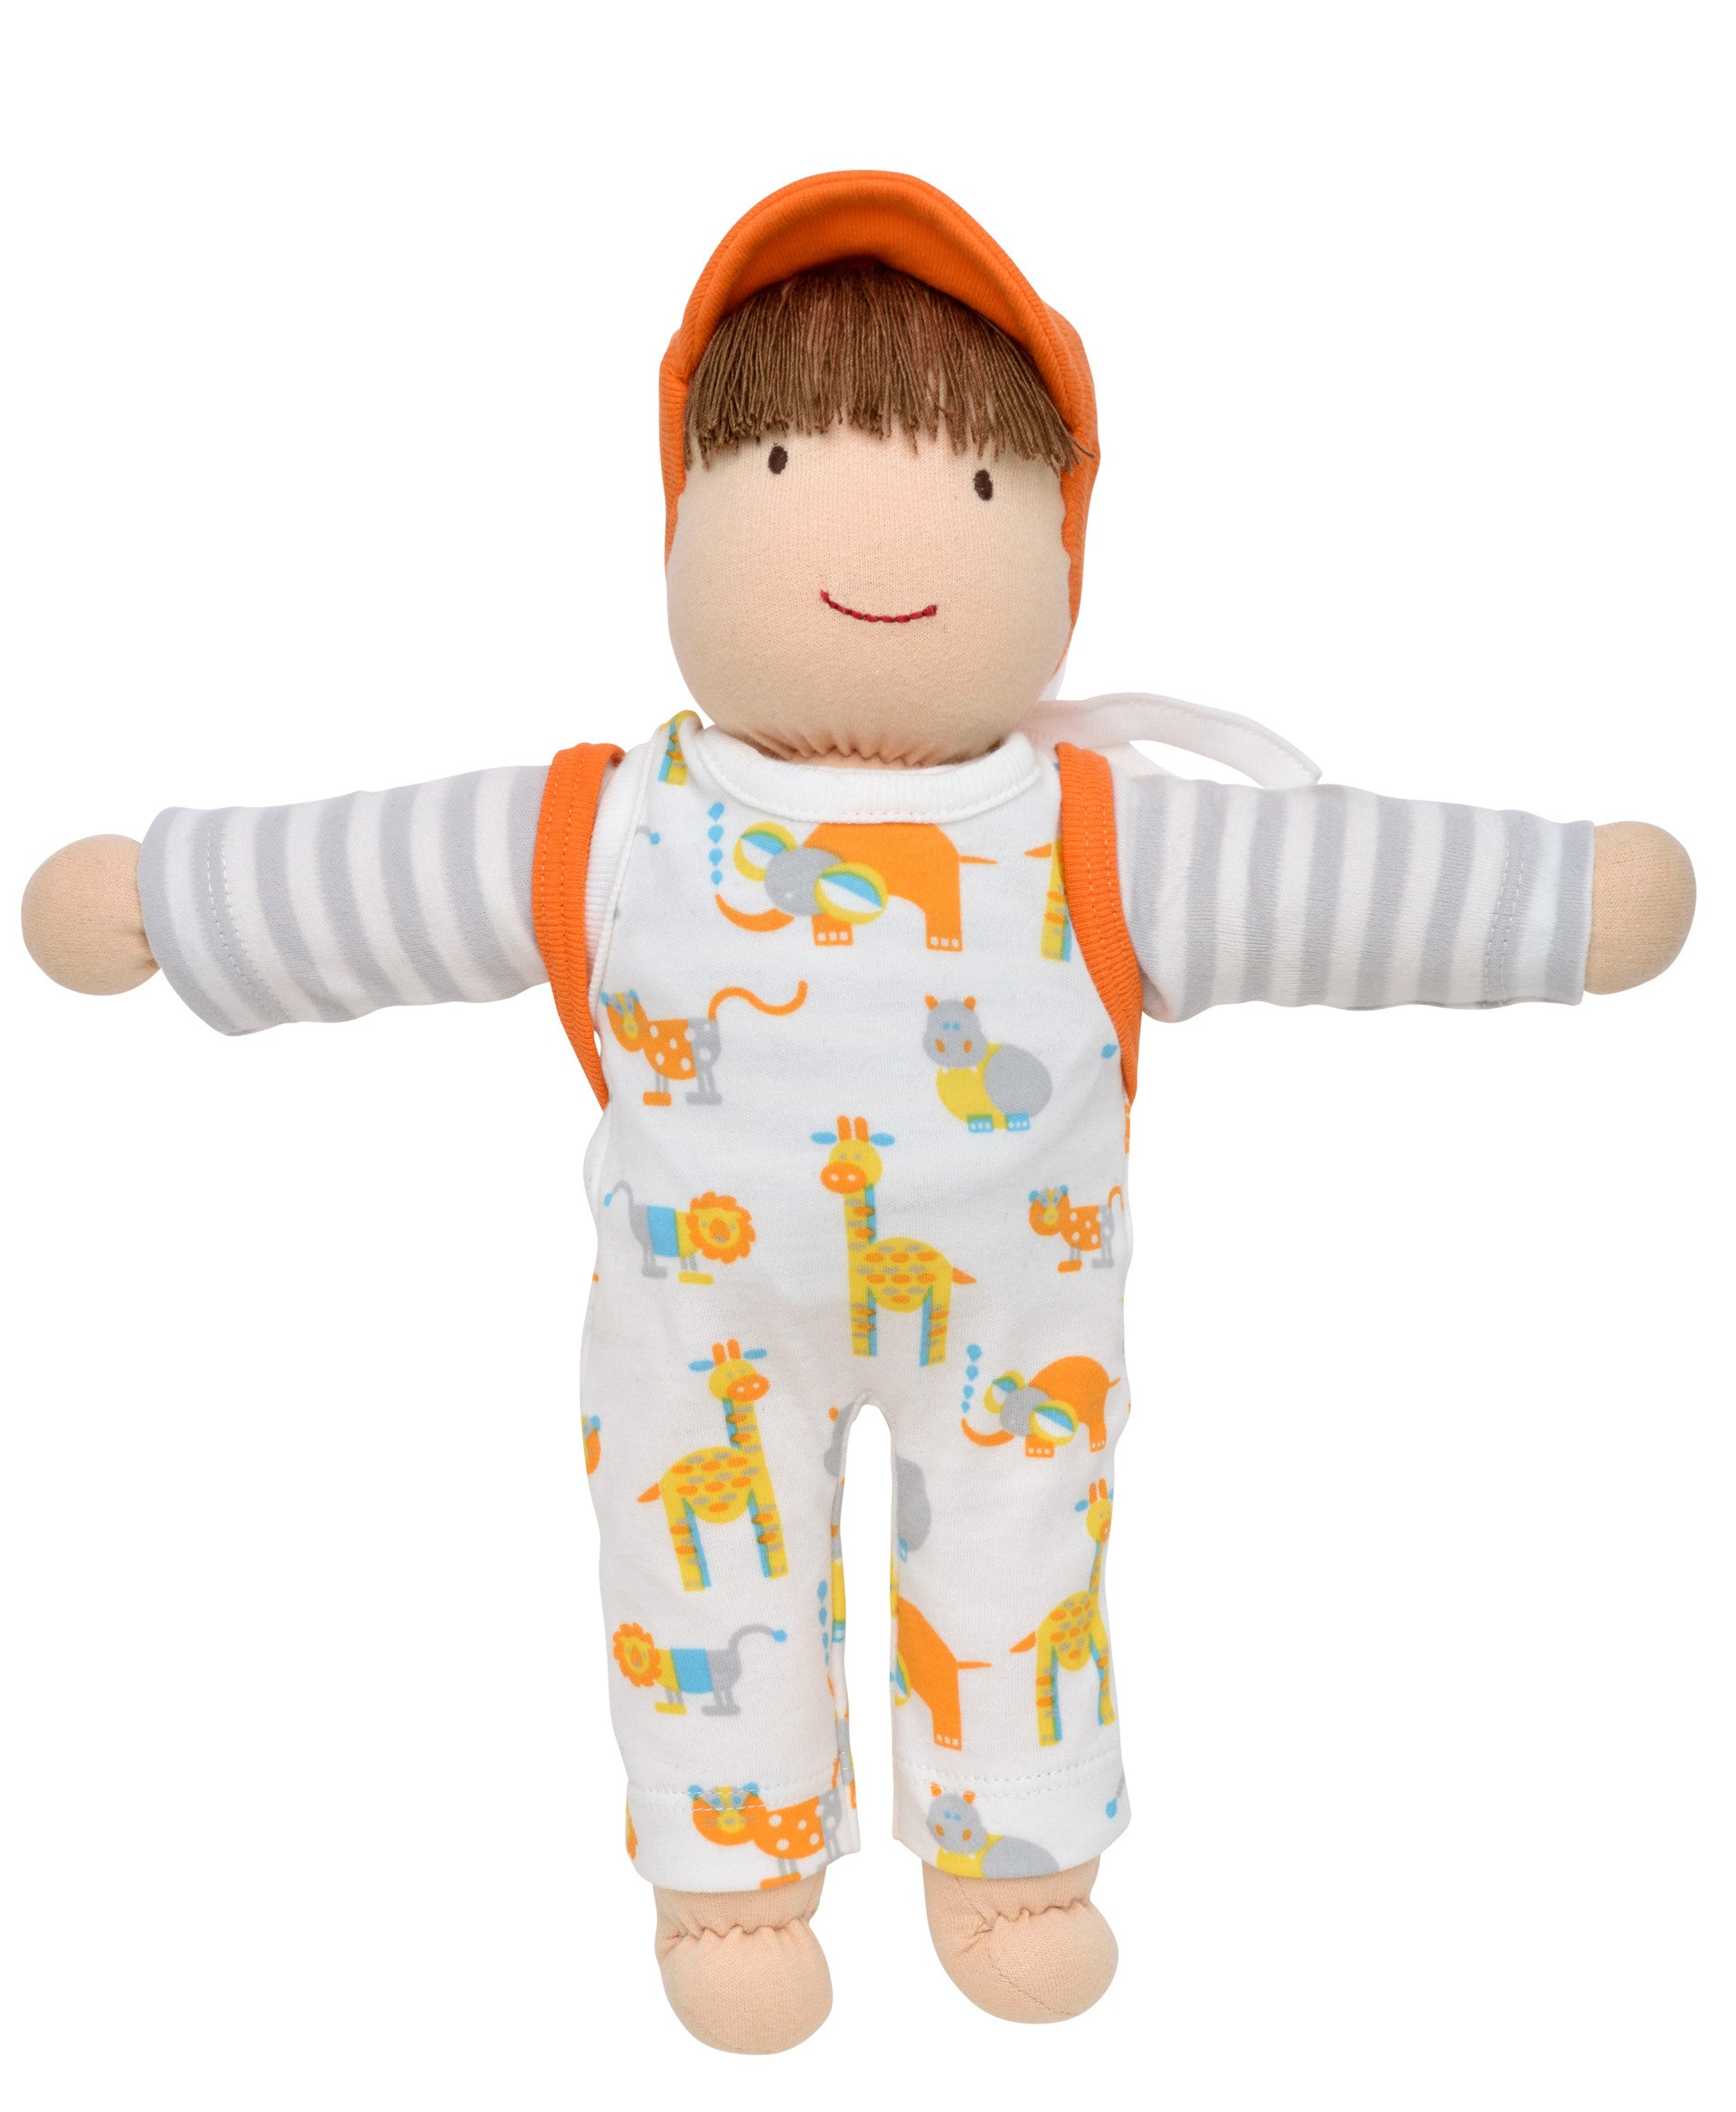 Organic Cotton Boy Dress Up Doll for Toddlers and Kids – Under the Nile